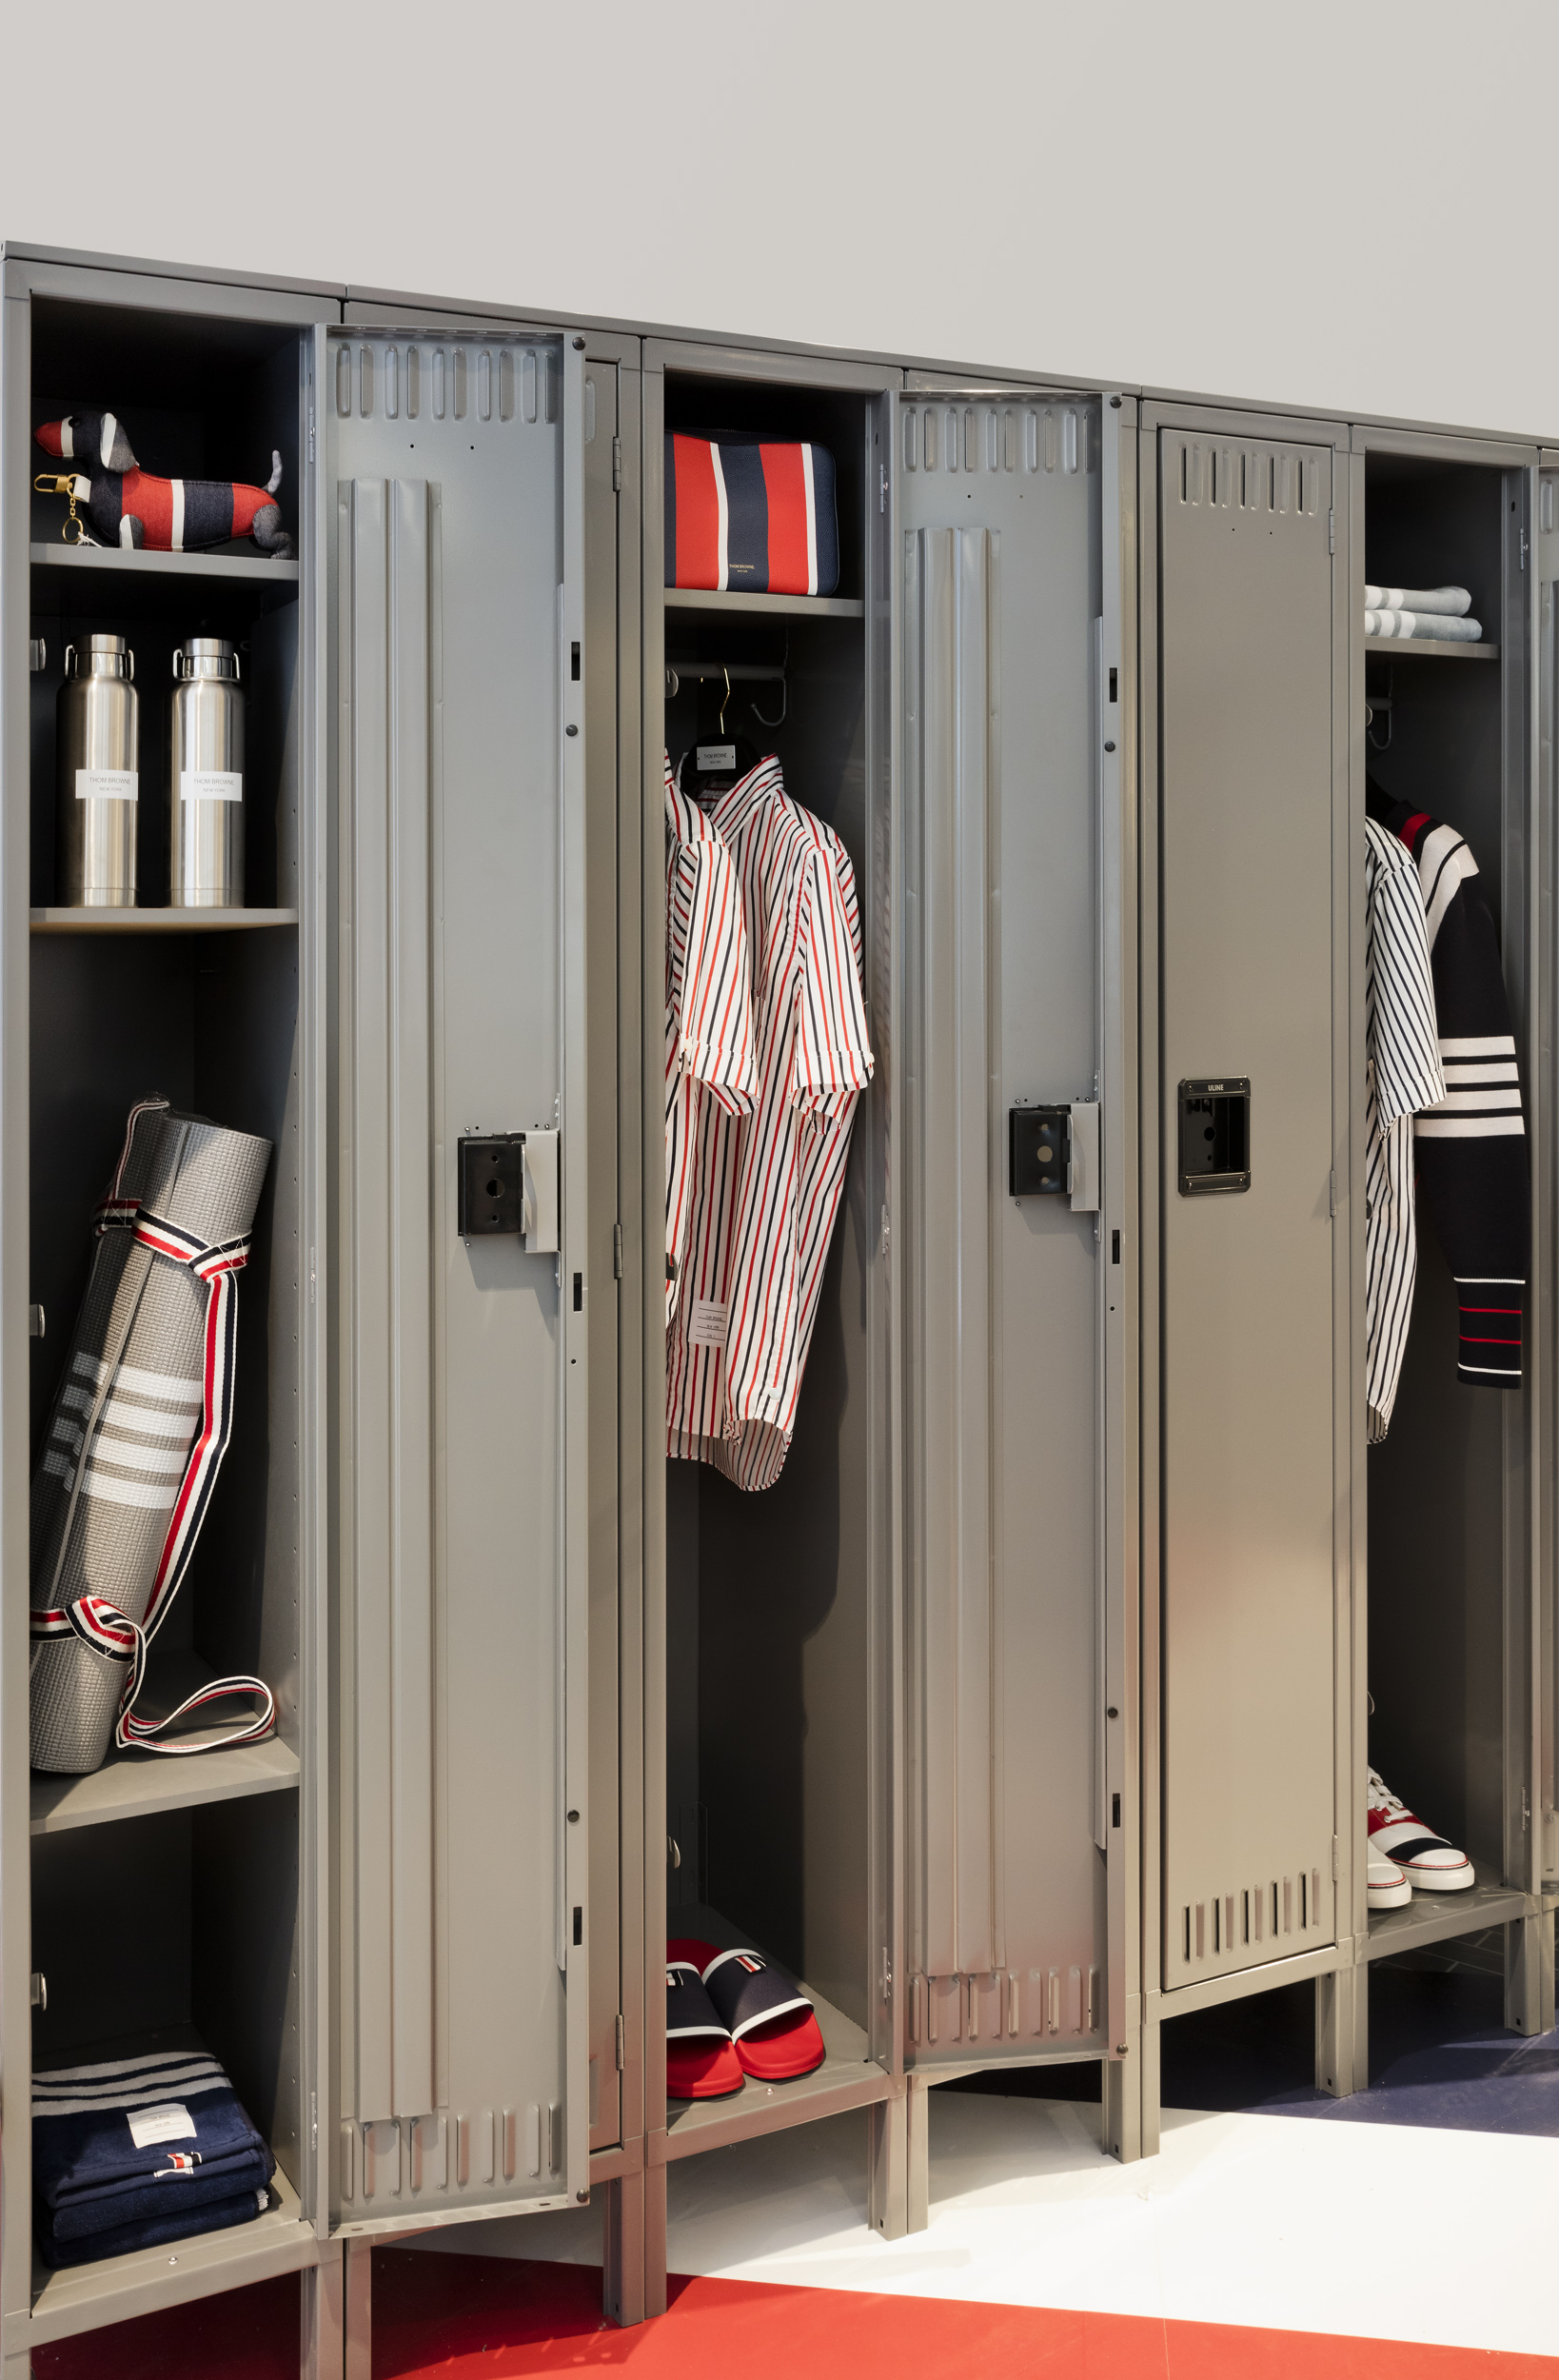 The Thom Browne locker room at the Nordstrom men's store.